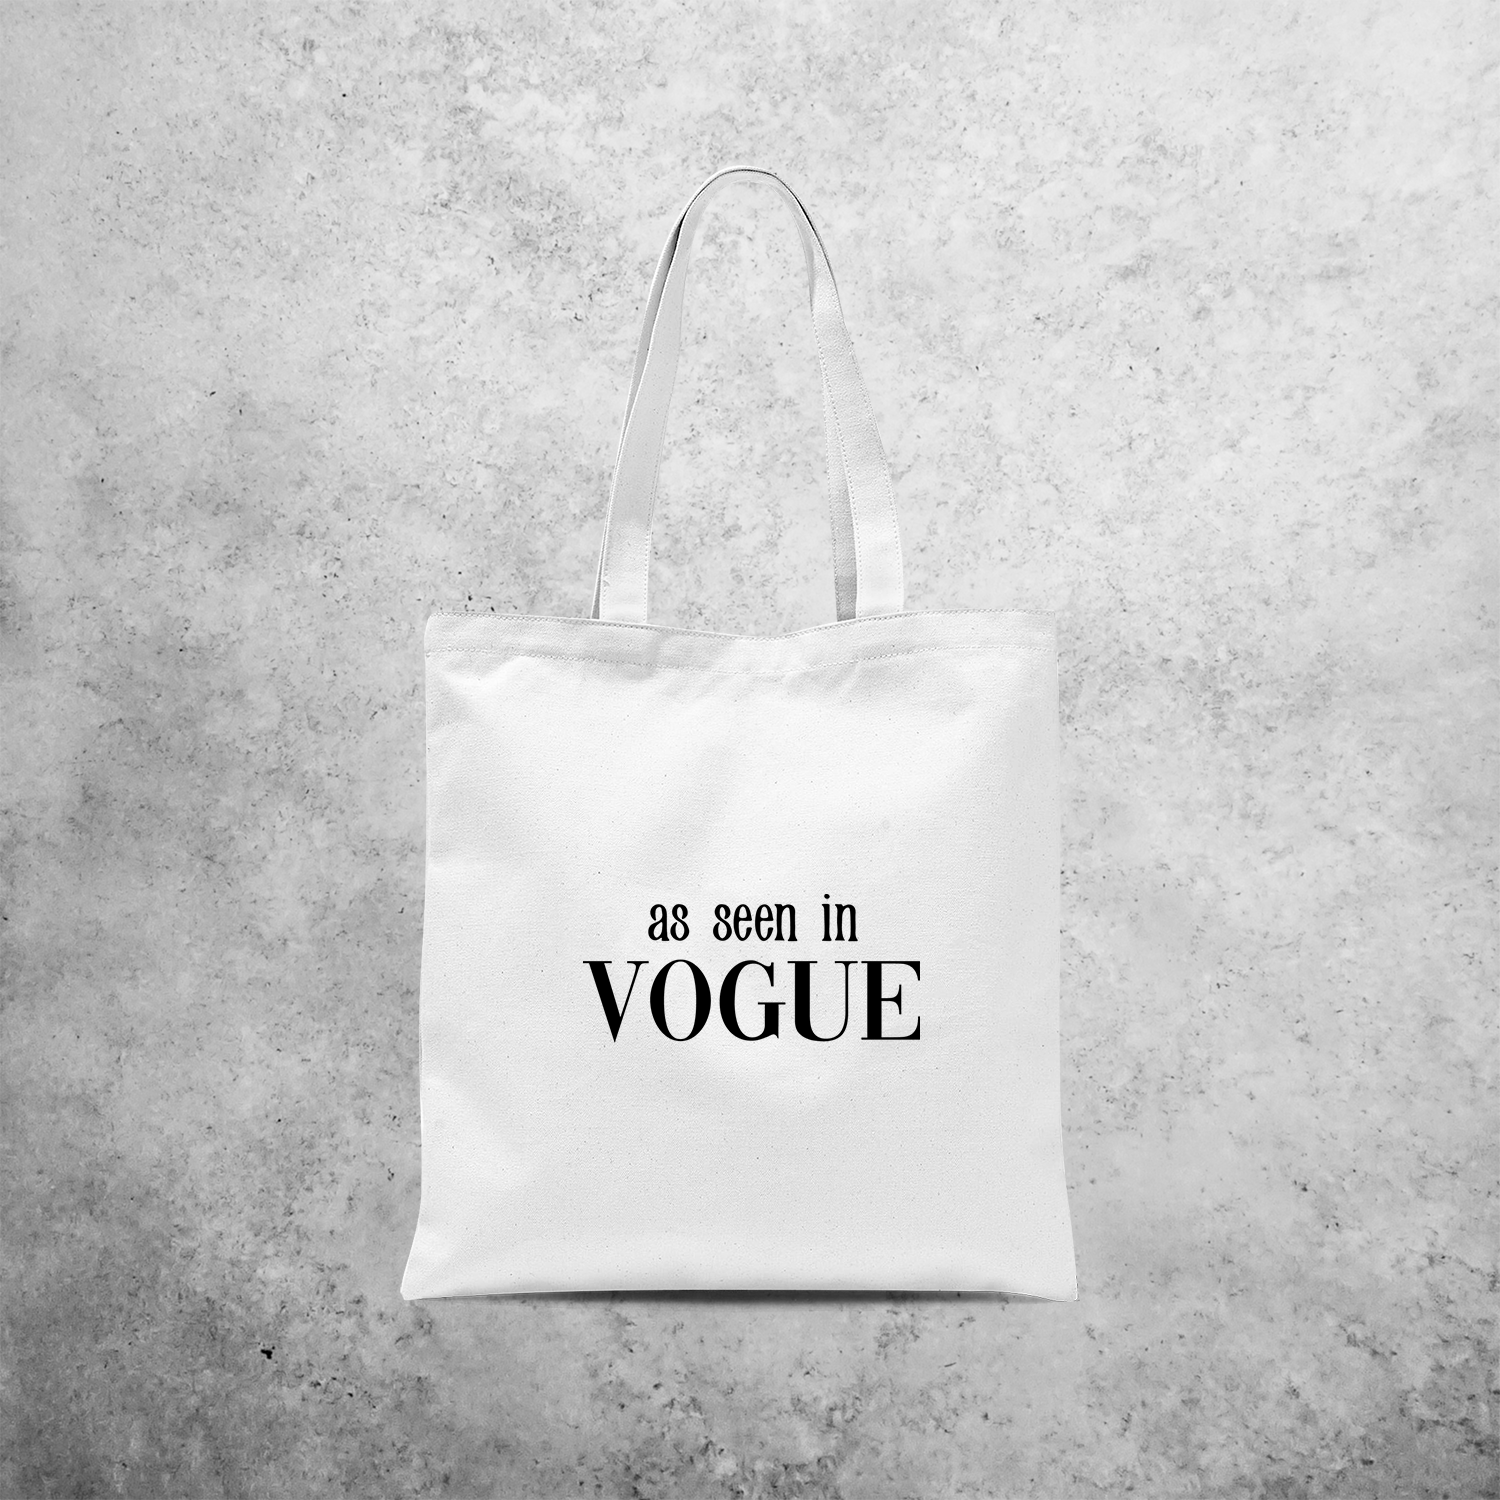 'As seen in Vogue' tote bag